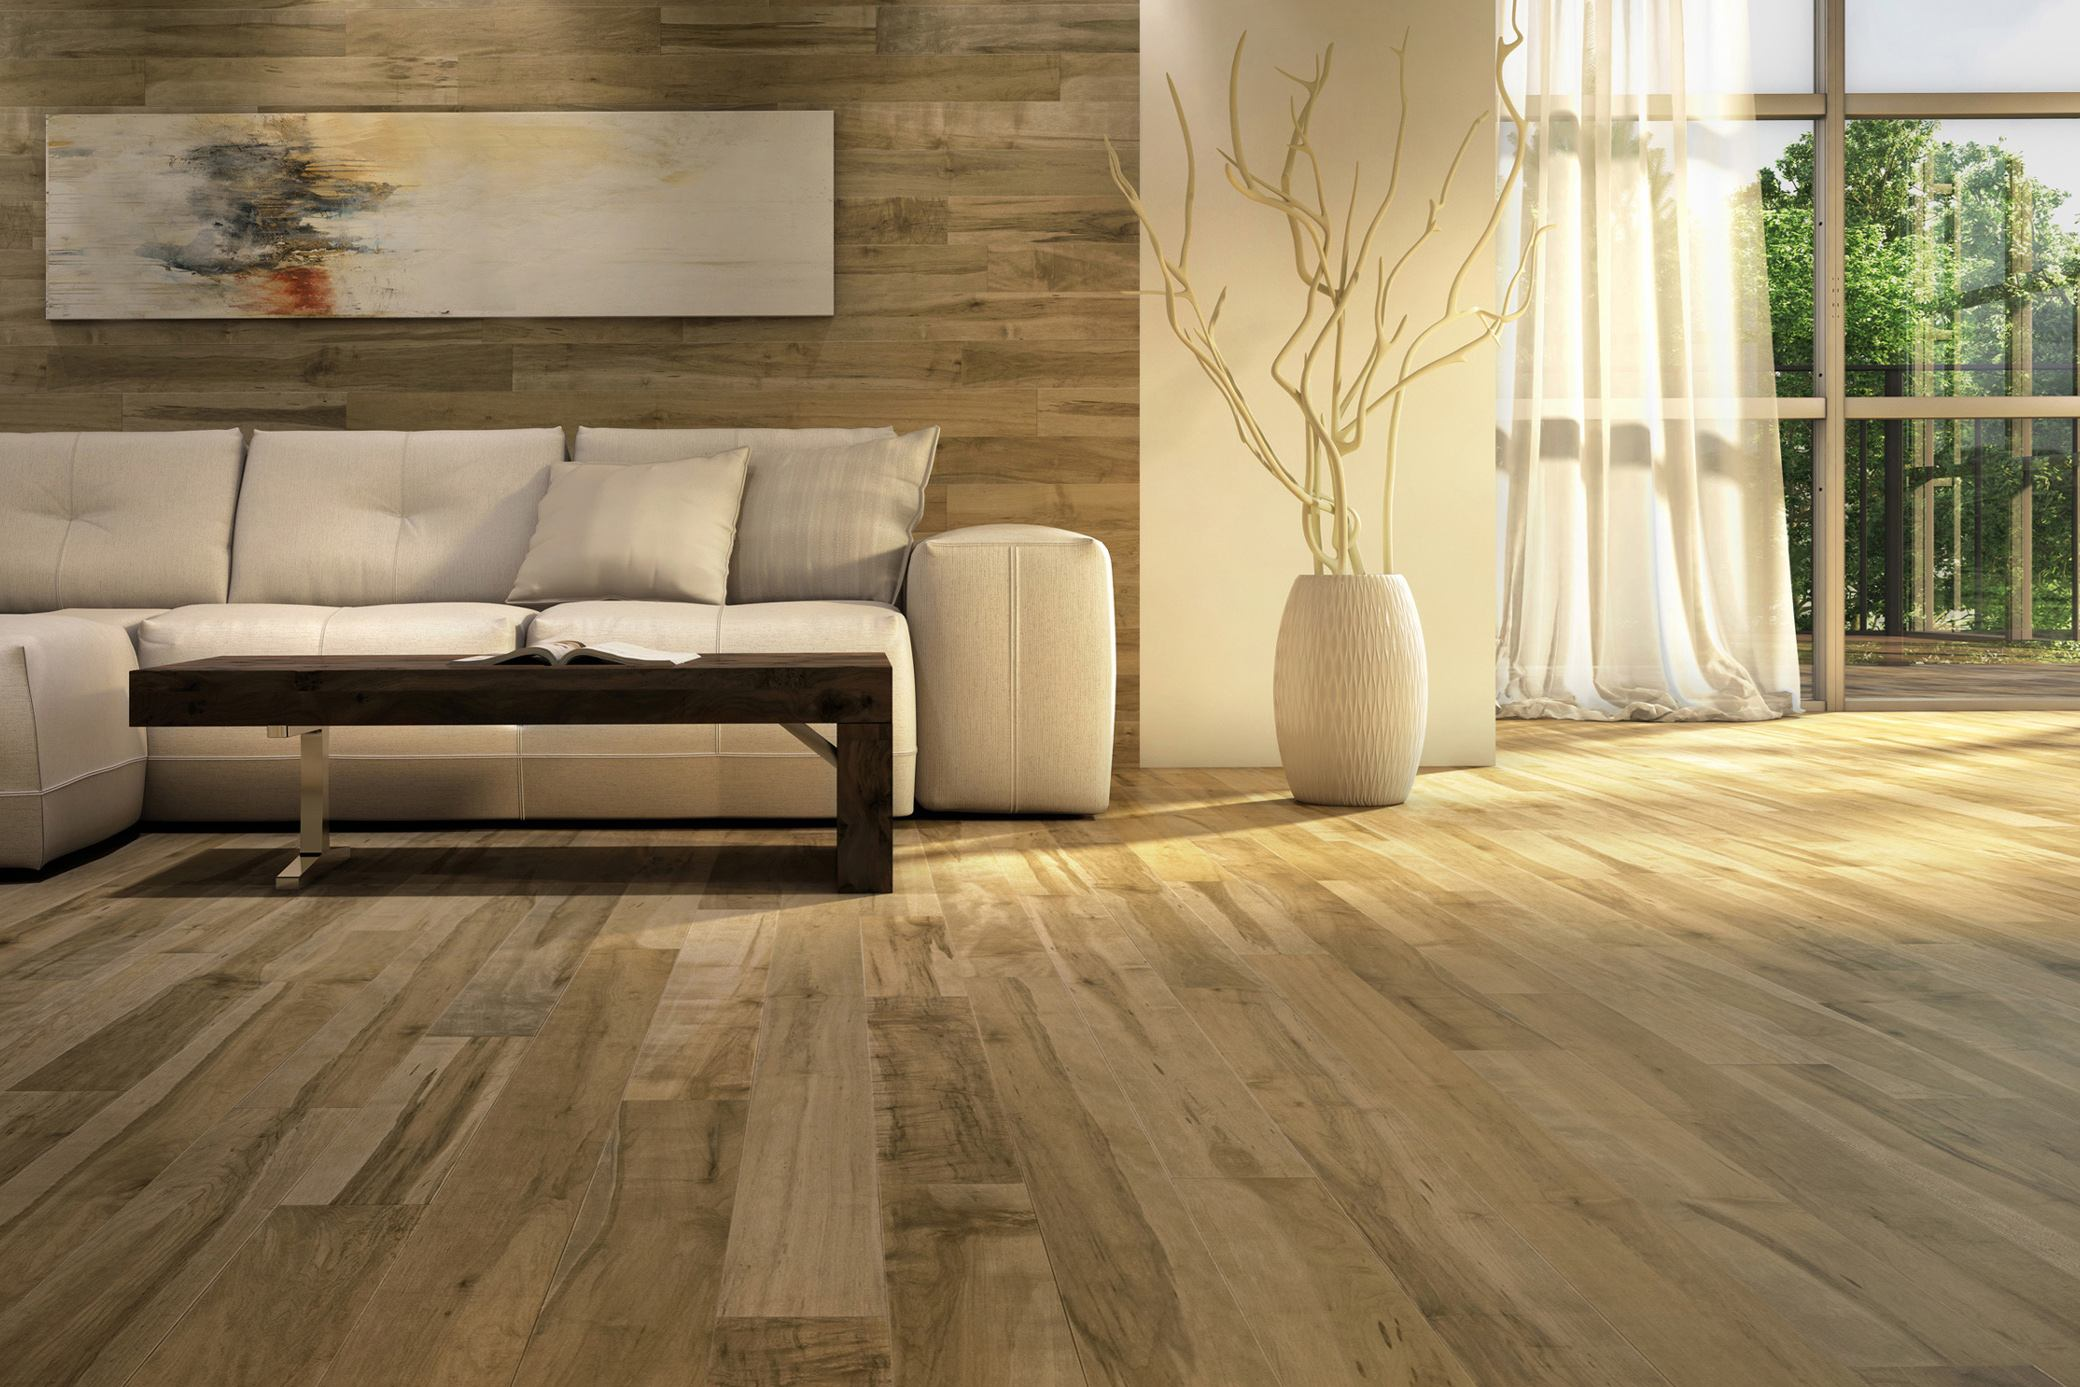 New line of hardwood flooring improves indoor air quality for Hardwood floors quality